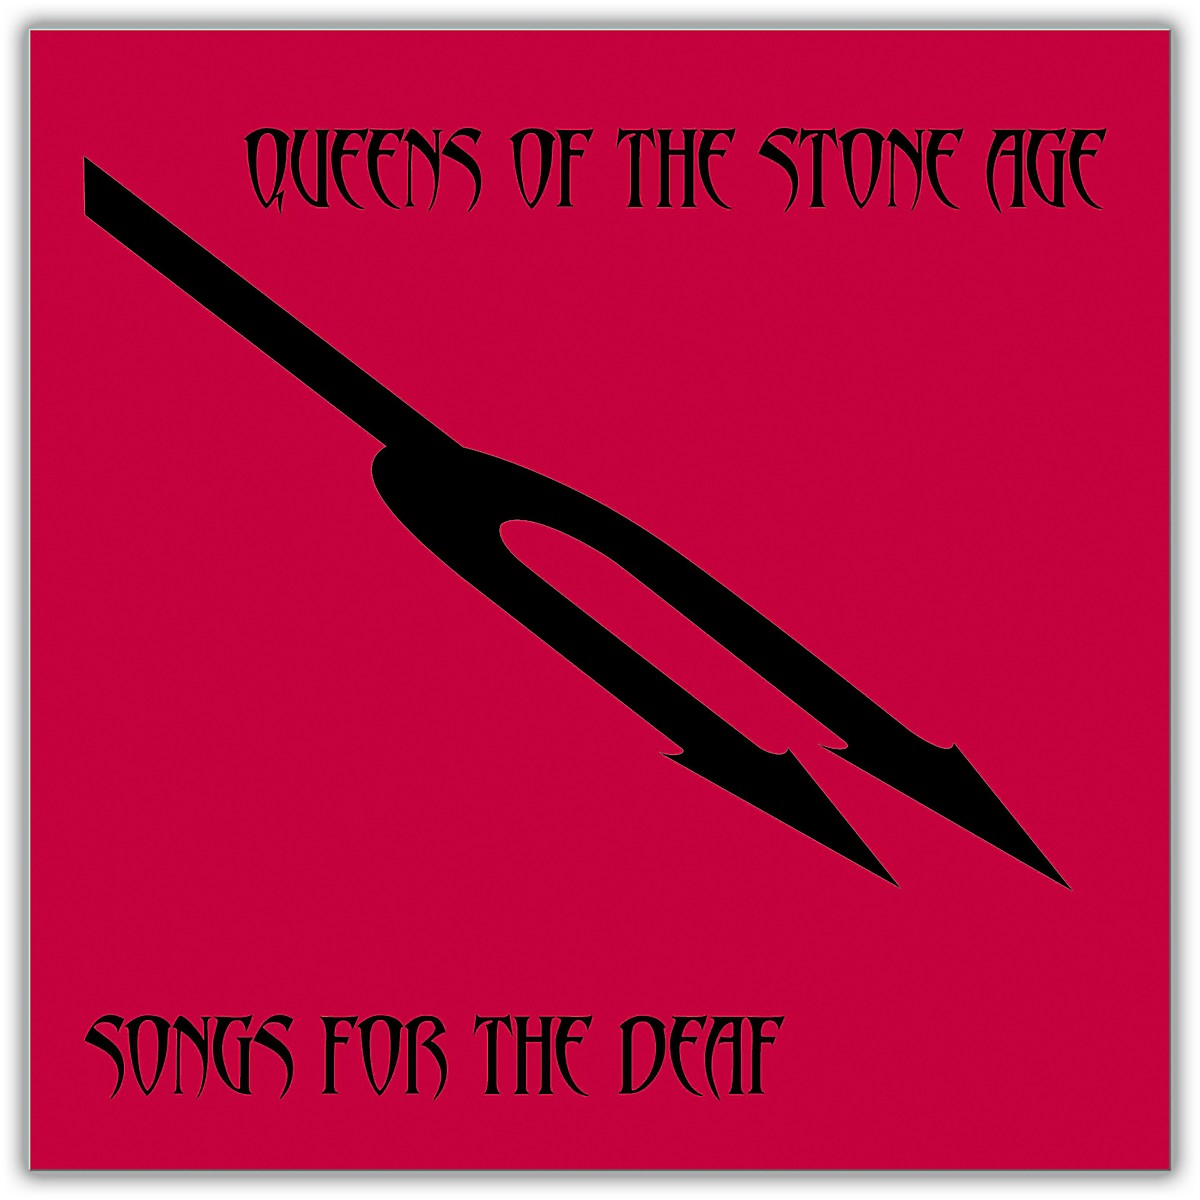 Universal Music Group Queens of the Stone Age - Songs for the Deaf LP